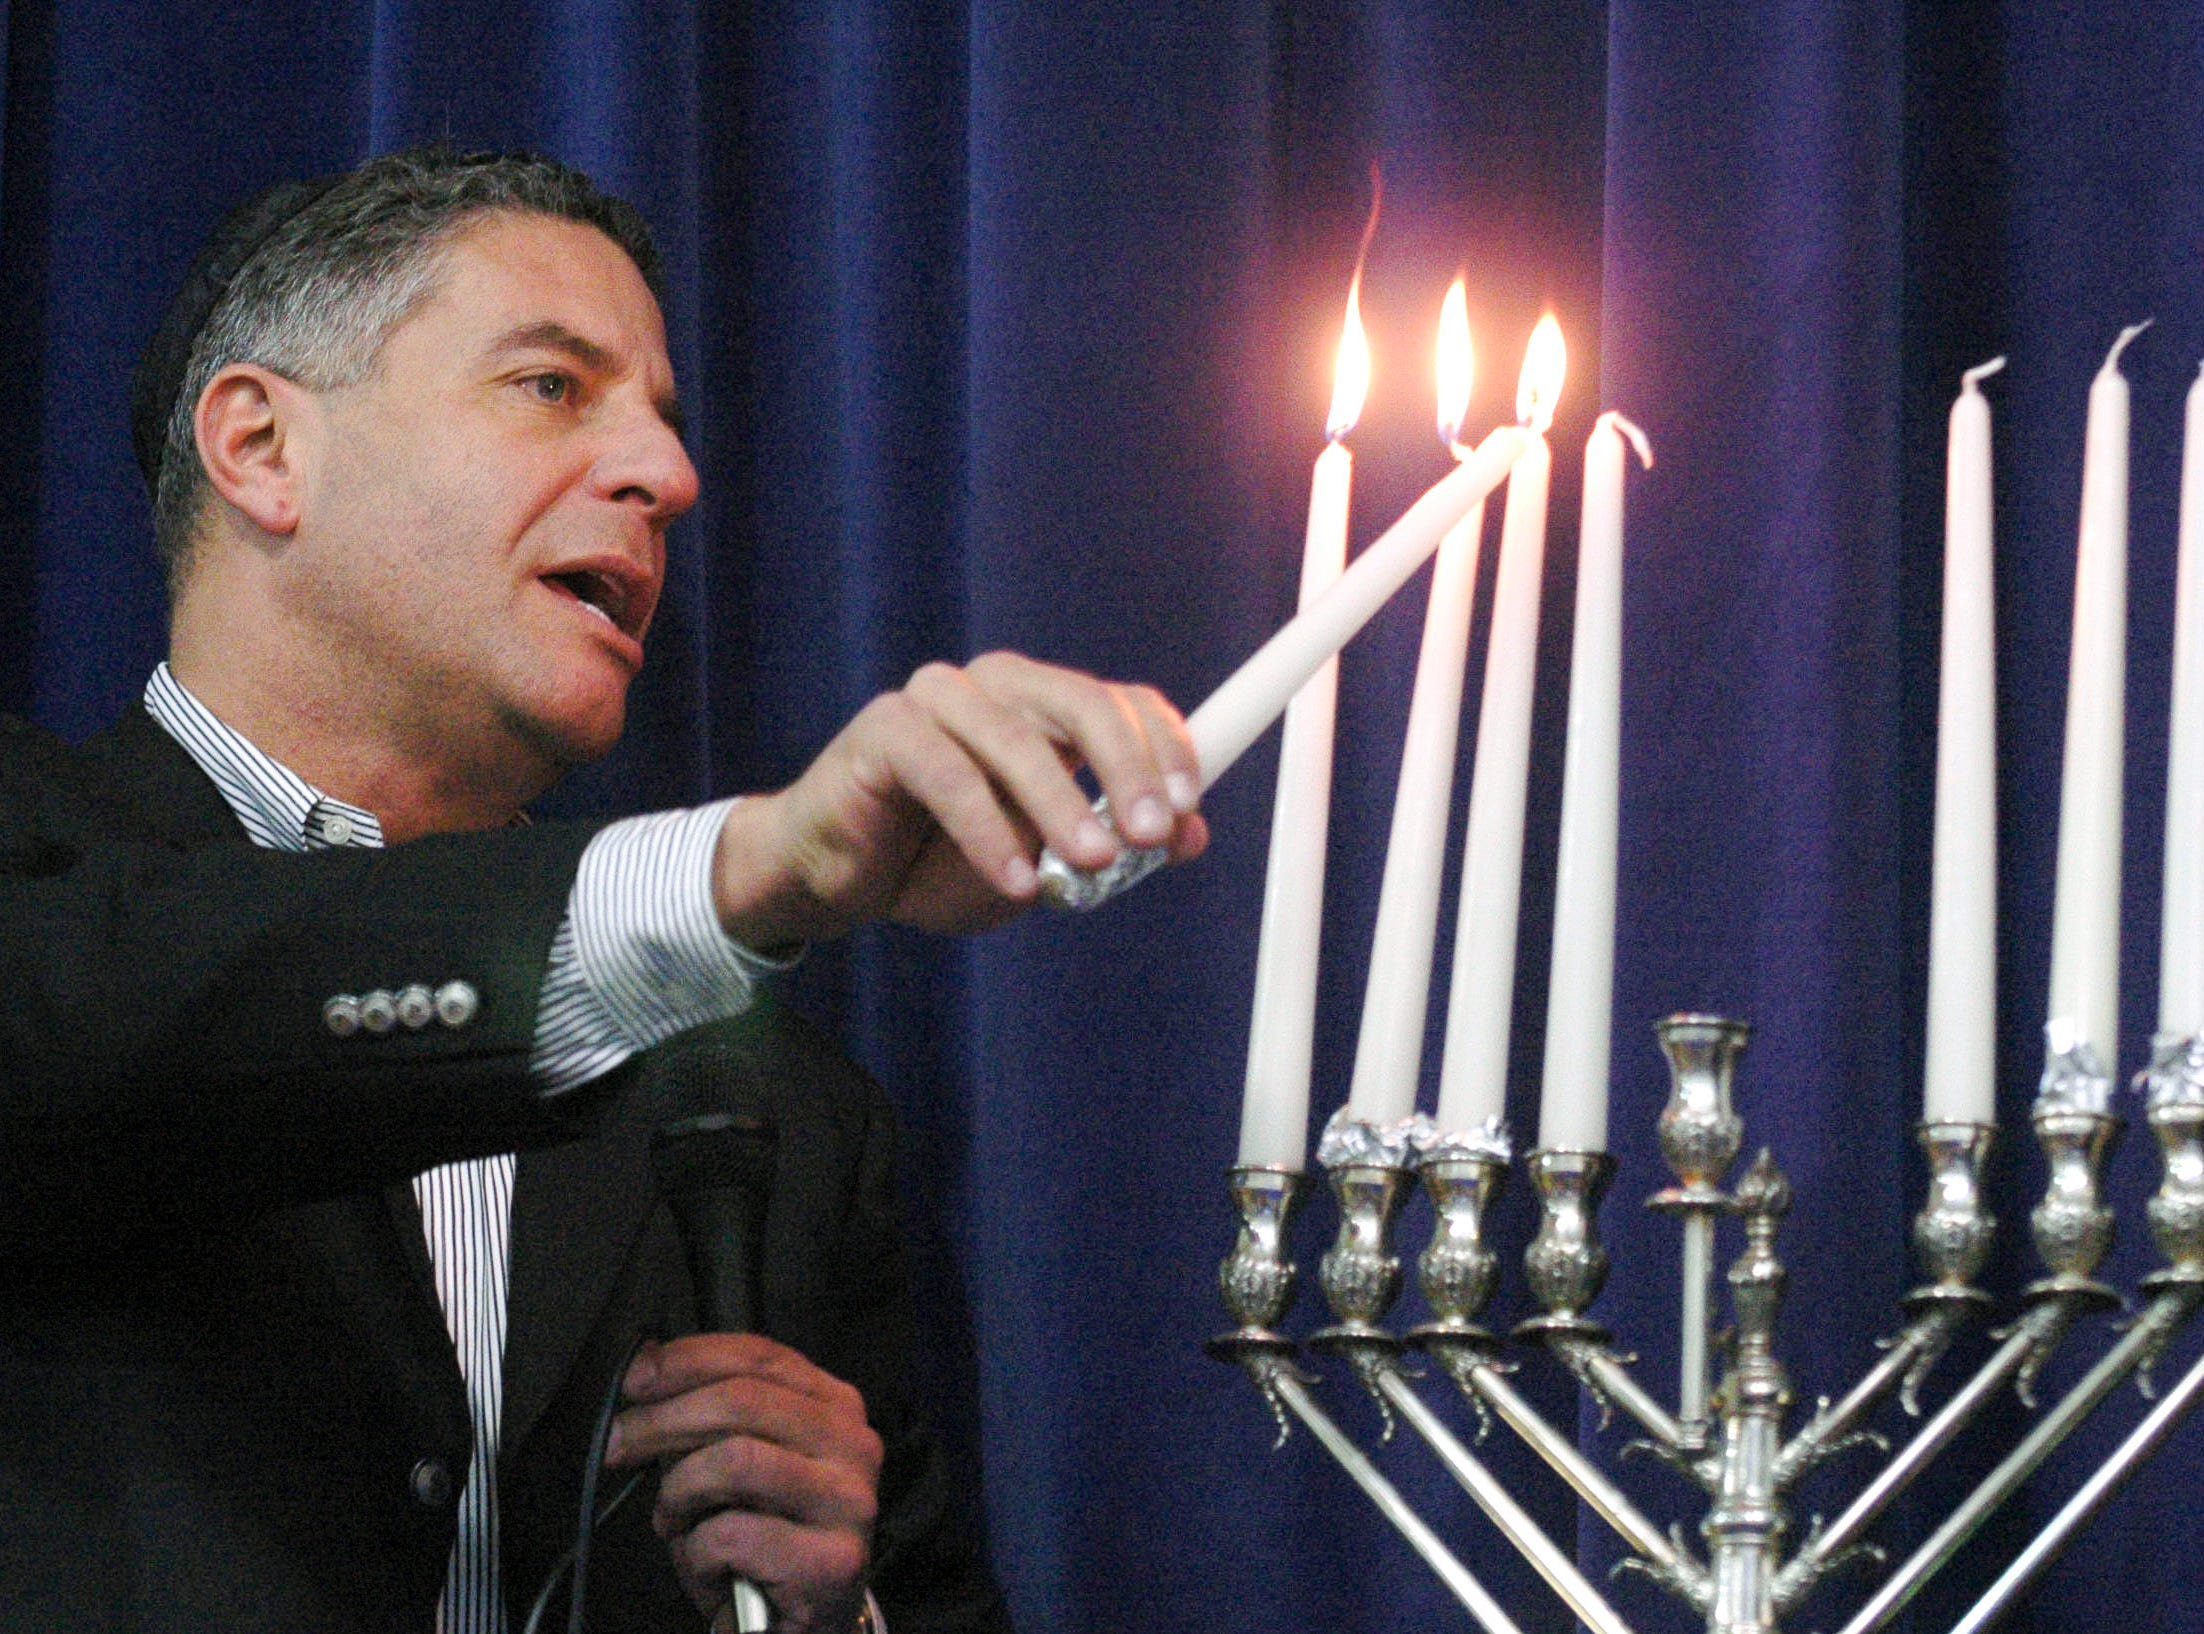 University of Tennessee men's basketball coach Bruce Pearl lights the candles of a Hanukkah Menorah during Menorah Madness at the Arnstein Jewish Community Center in 2007. The event is sponsored by the Knoxville Jewish Alliance and Chabad of Knoxville and marked the final day of Hannukah.